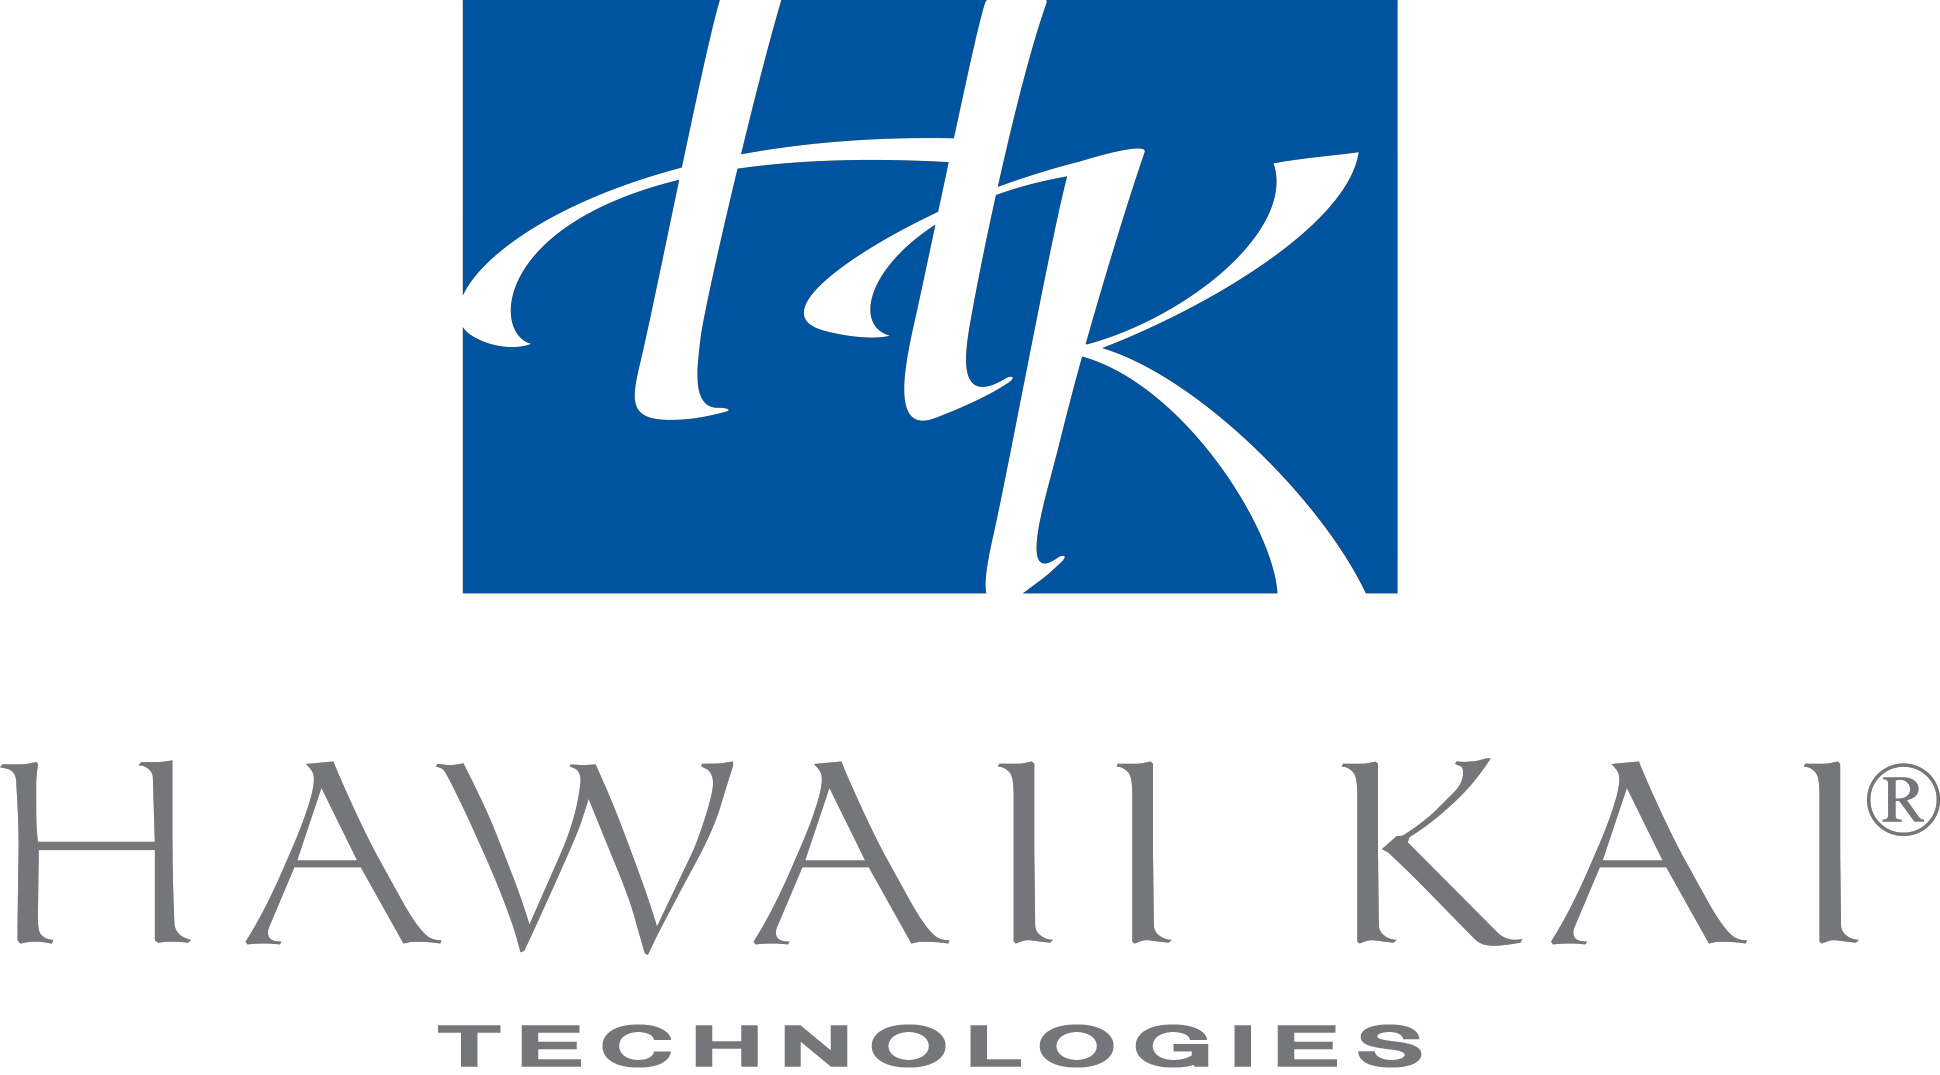 Hawaii Kai CorporateBW